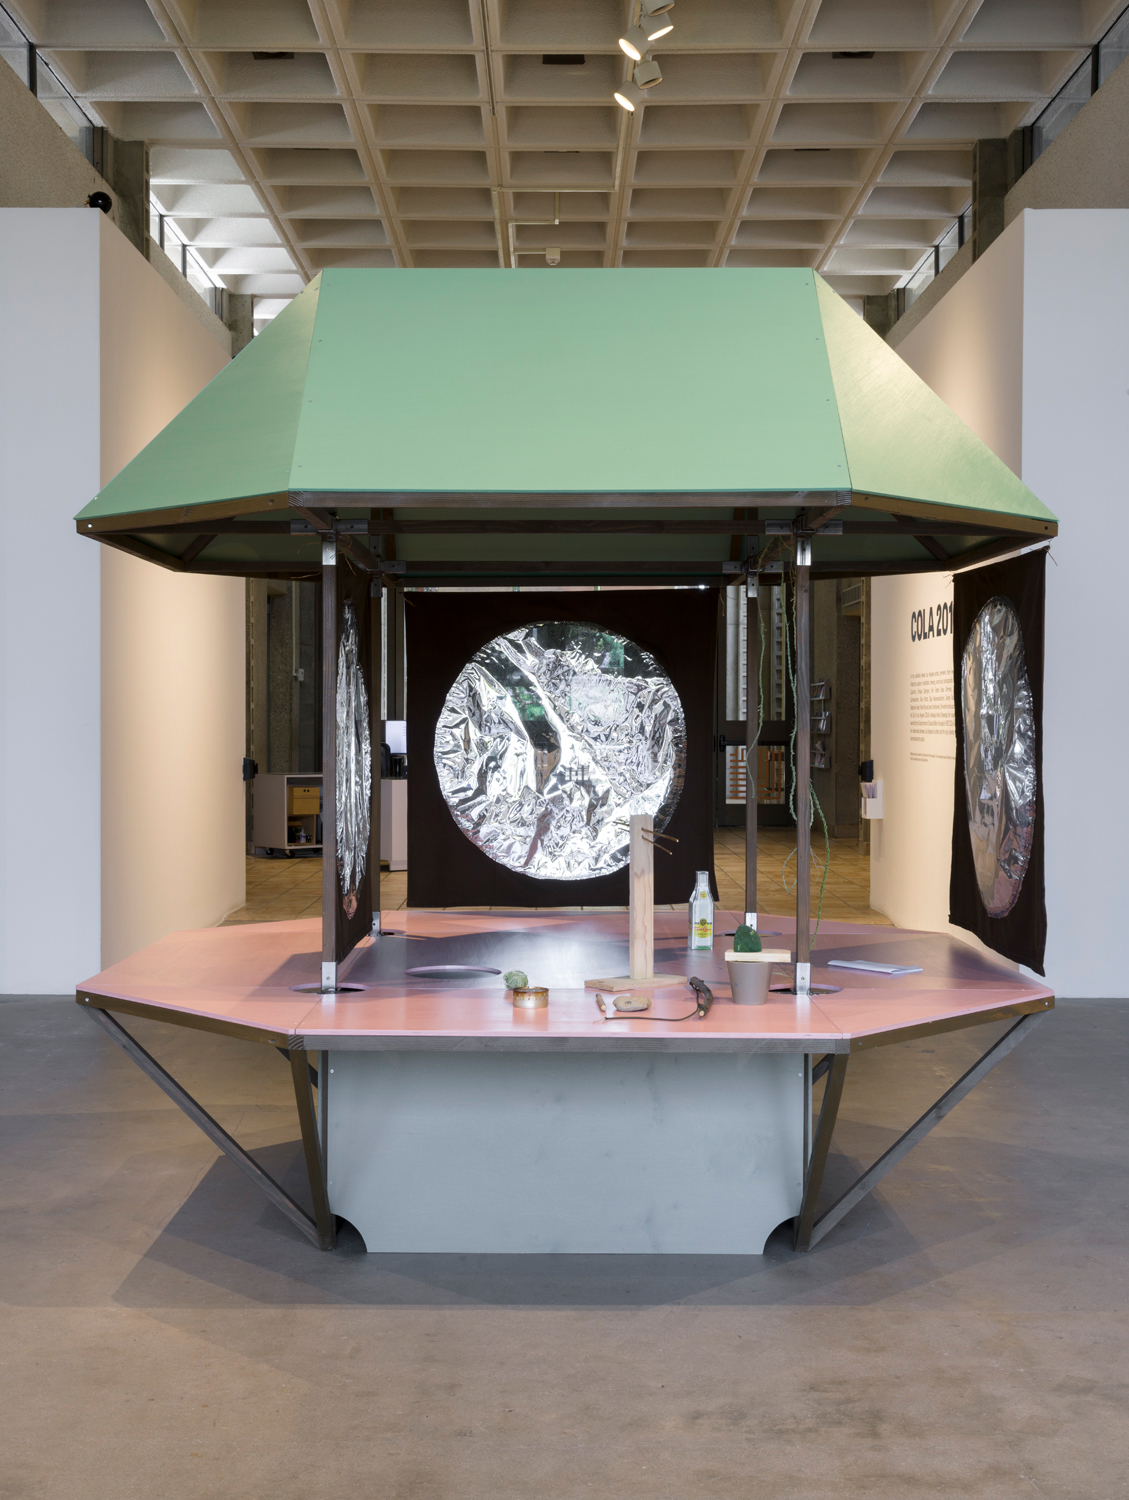 This artwork installation is a survival structure by the artist Alice Könitz. The structure includes an angular, light green roof and three hanging fabric panels with a circular reflective material in the middle of each panel. There is also a light pink, flat seating surface beneath the panels. On this seating surface are an assortment of objects, including a wooden bar propped upright, a paper object resembling a bottle of Topo Chico, a cacti in a pot, a rock, a small ball of yuca, and a dark piece of wood with string attached. There are also three different covered holes on this surface. Beneath this surface is a rectangular support with metal bars supporting the pink surface and structure overall.